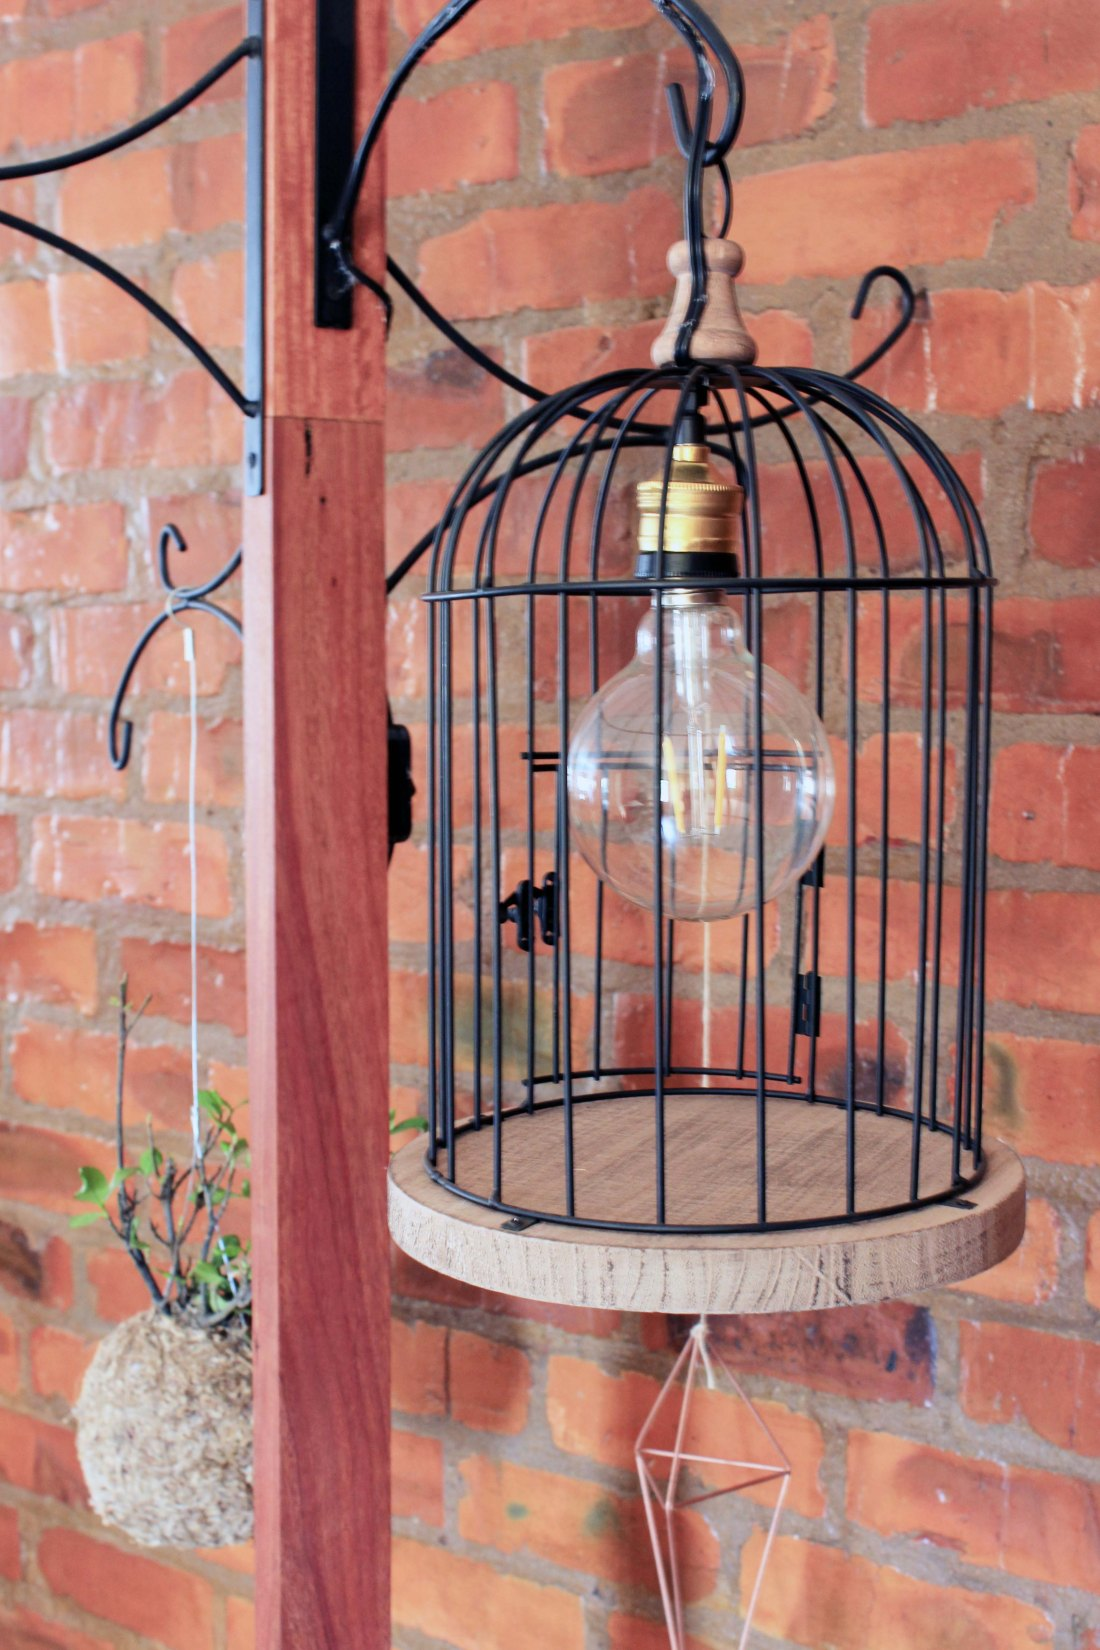 DIY_Unique Coat Hanger-Bird Cage Lamp_3